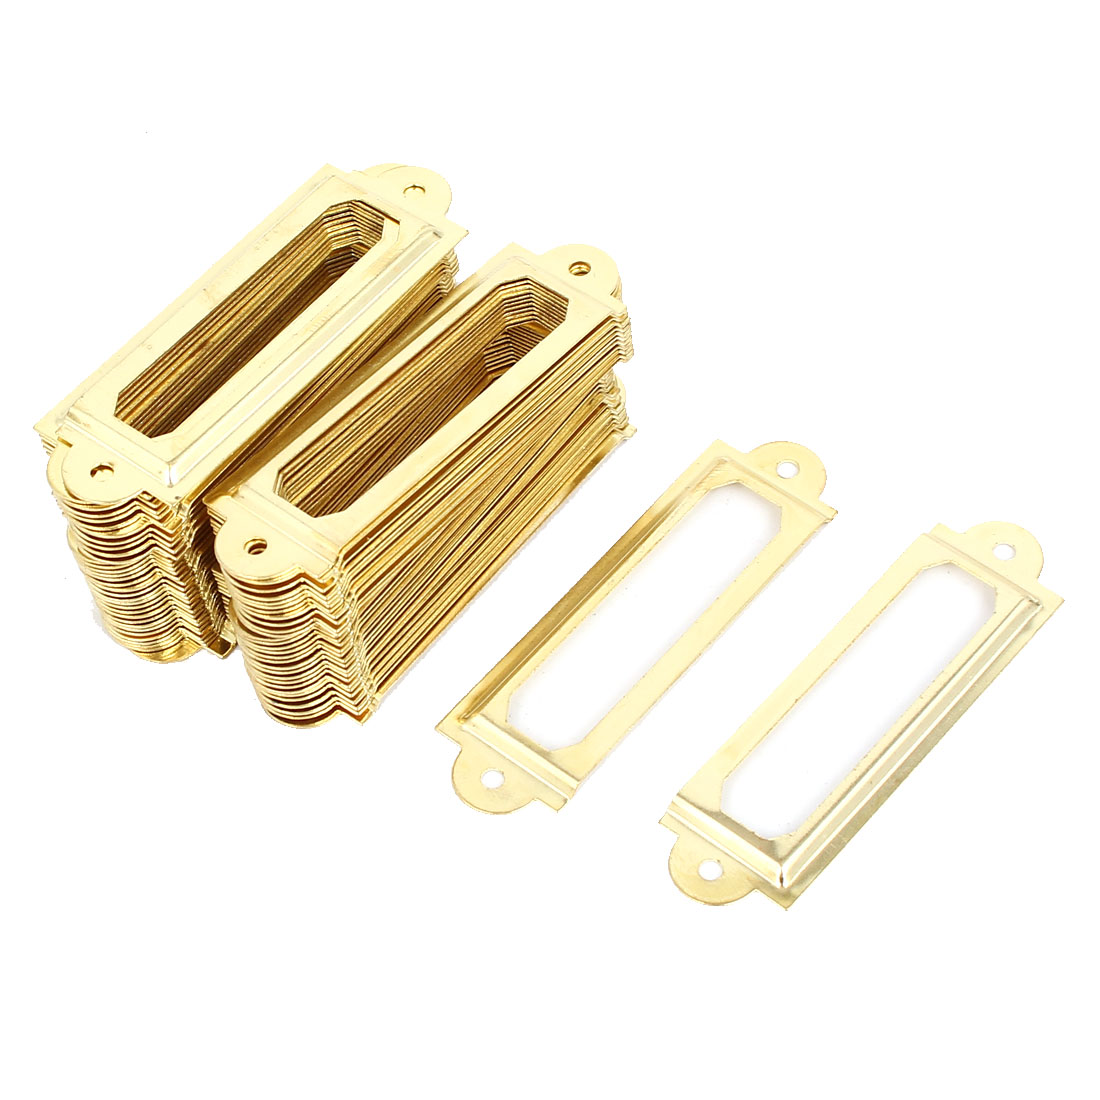 60mmx17mm Office Library Drawer Cabinet Label Pull Holder Frame Gold Tone 100pcs